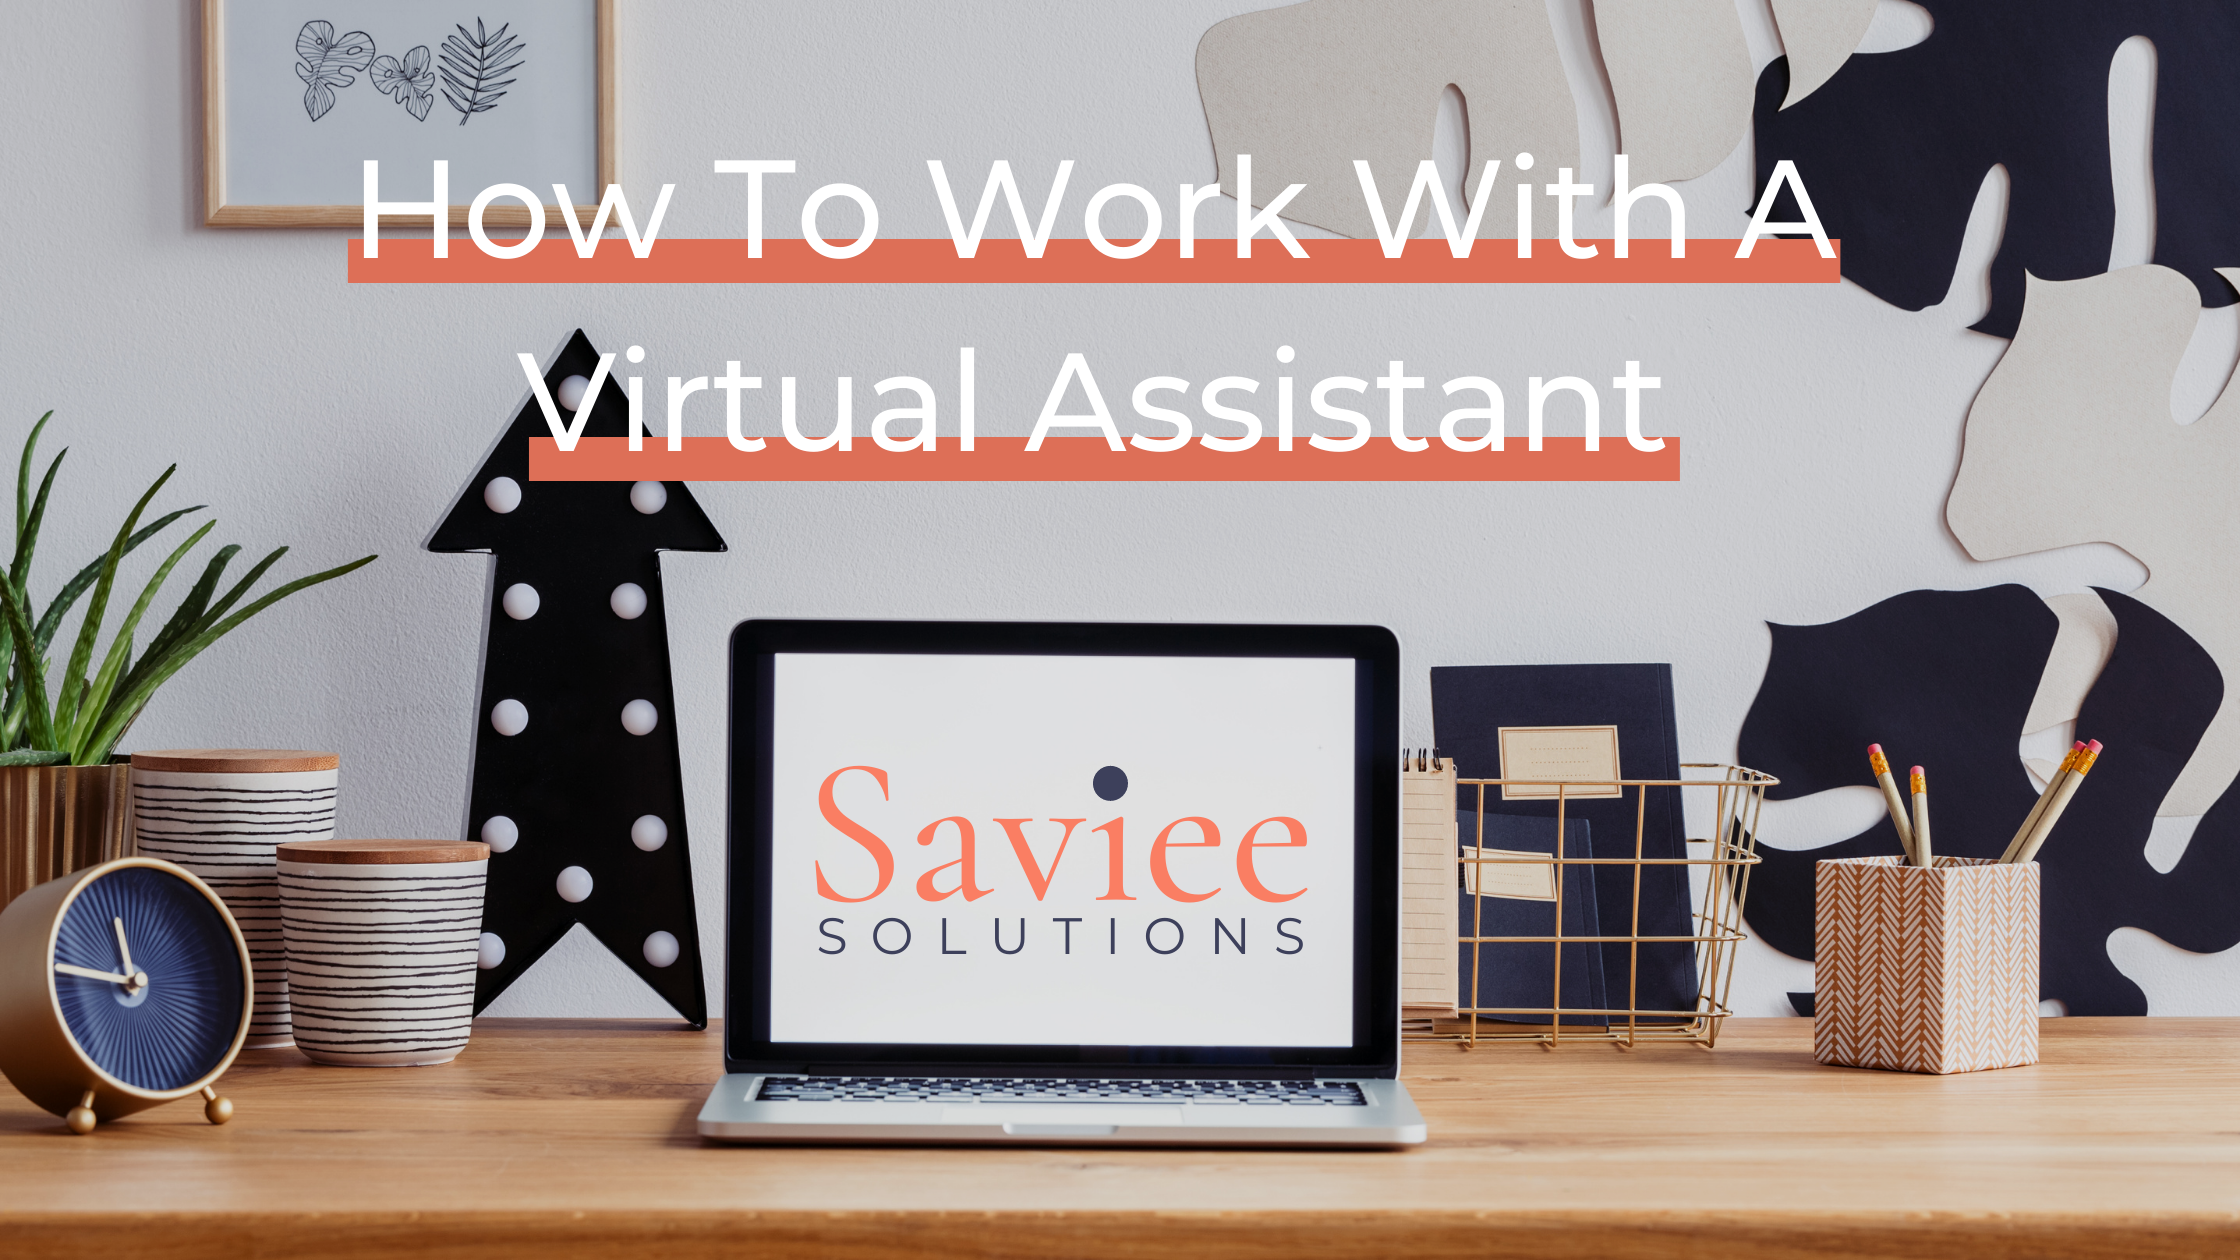 How to work with a virtual assistant